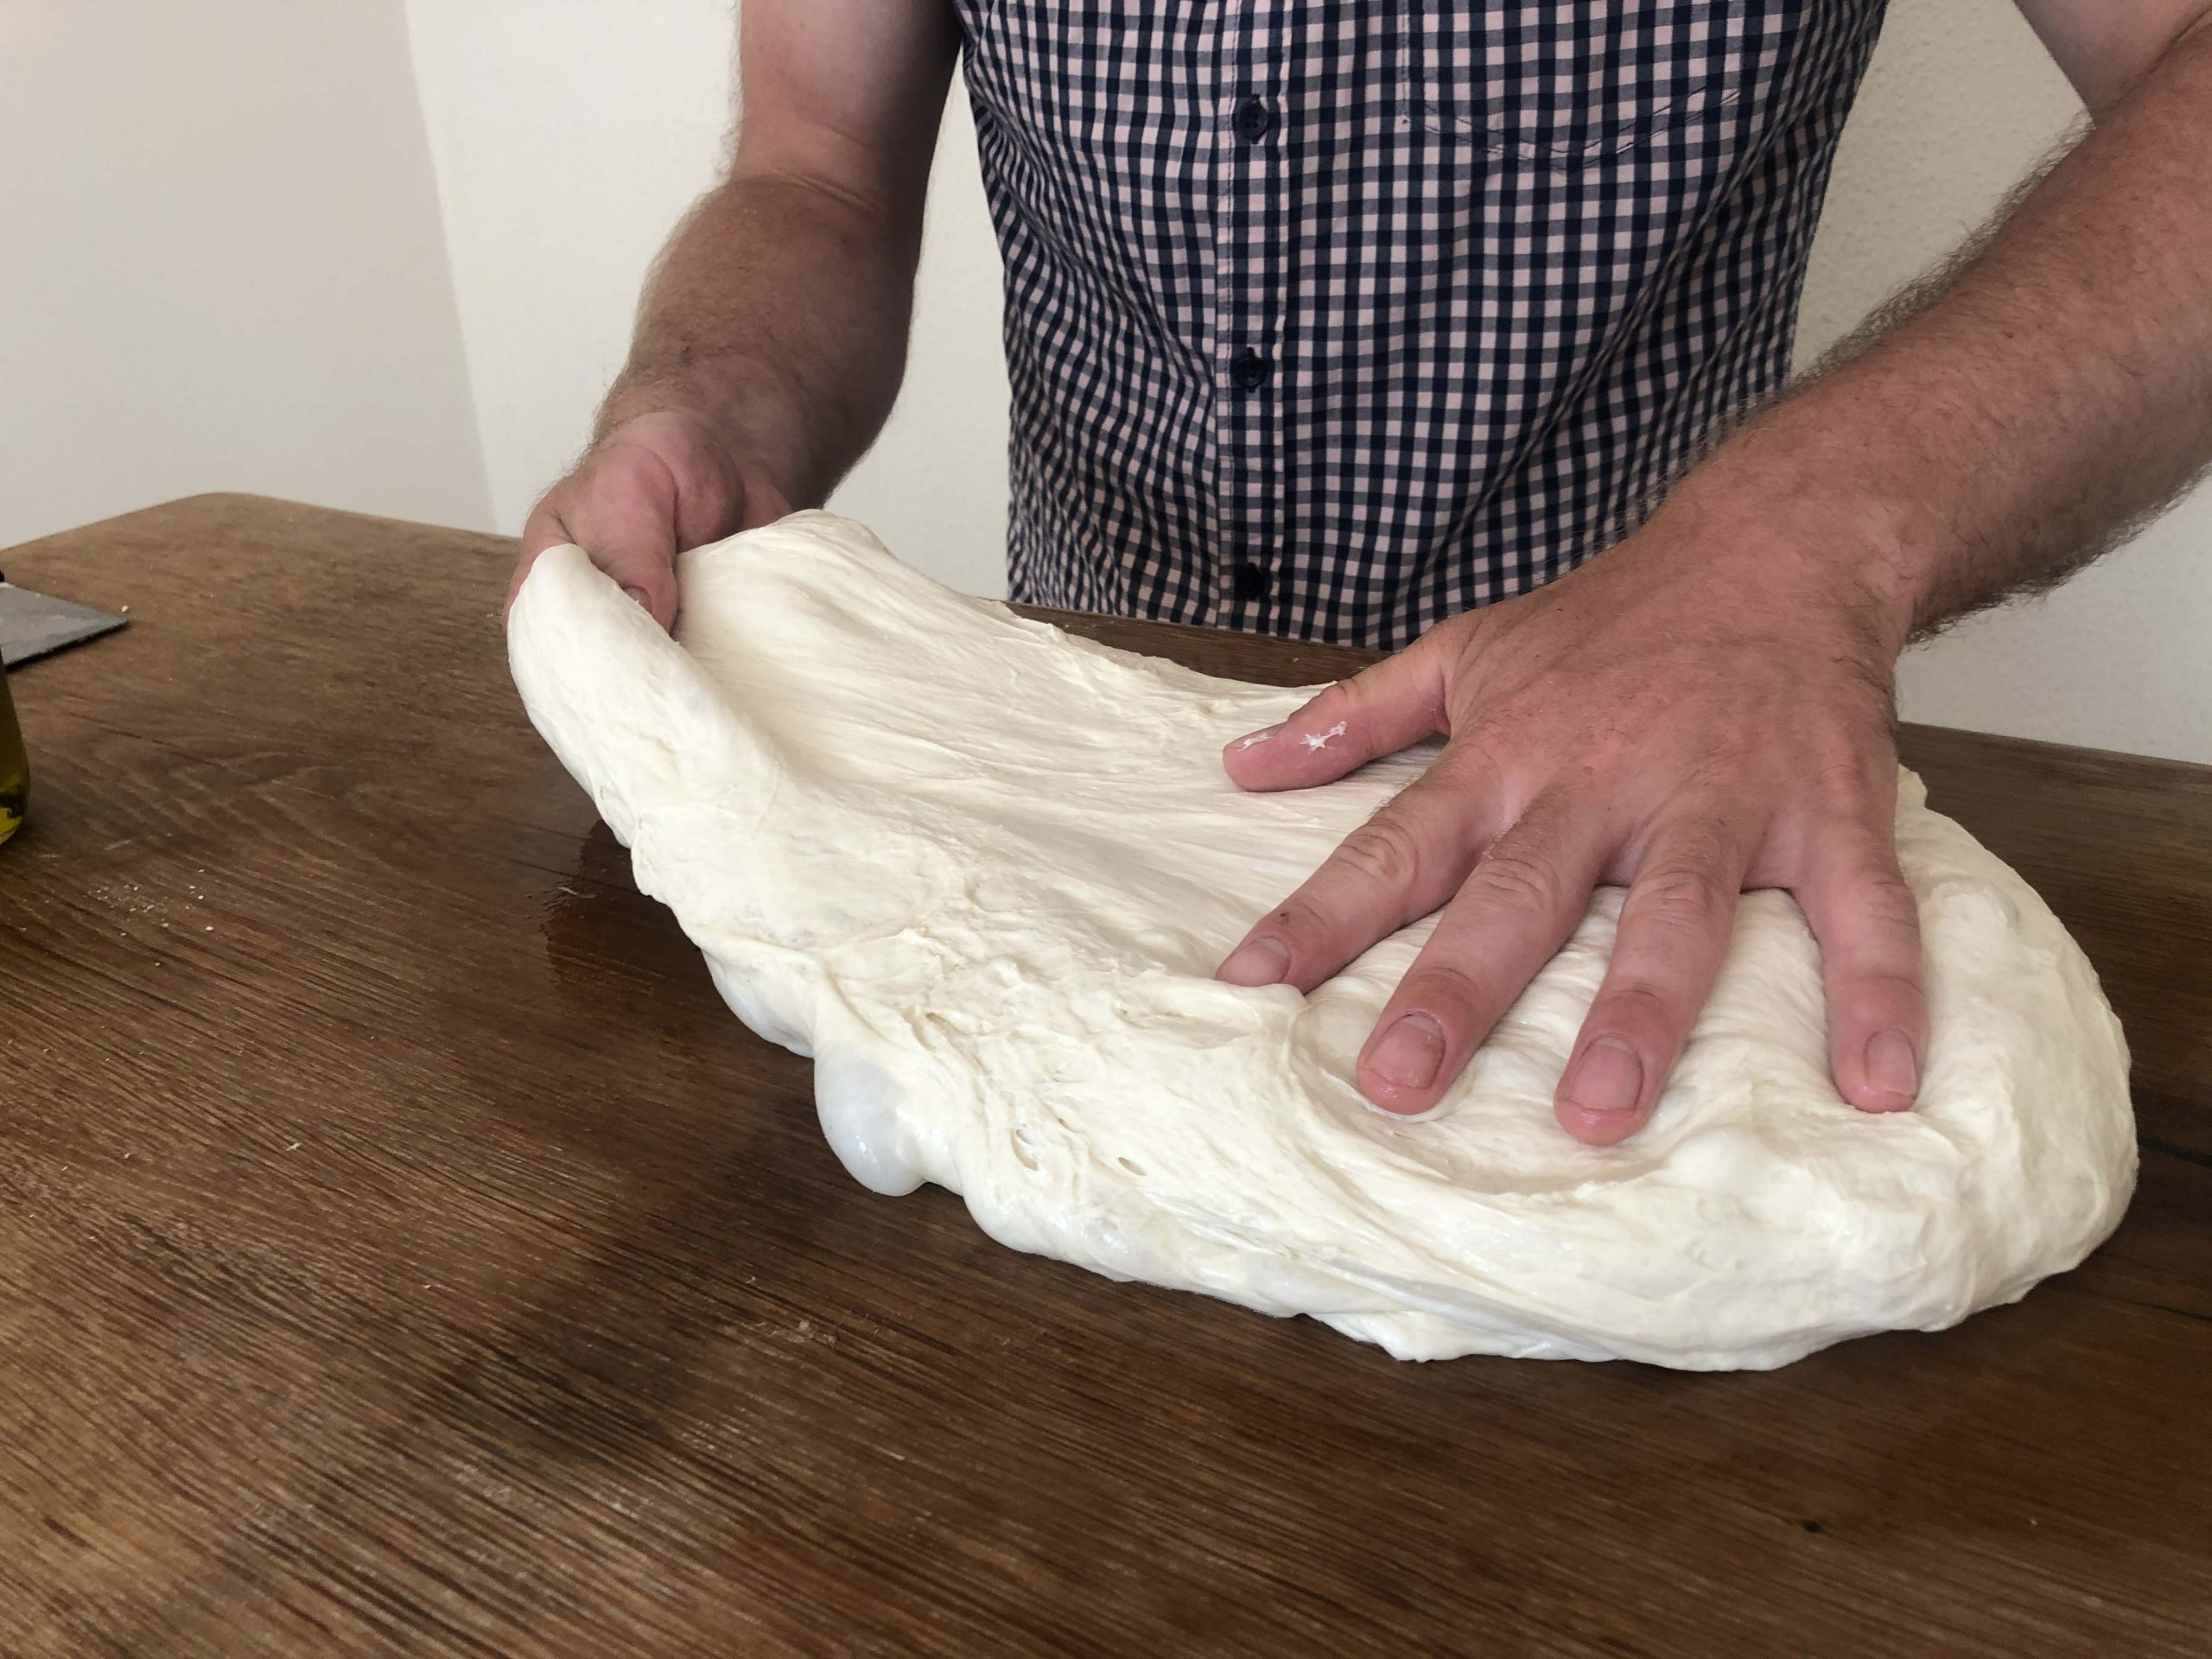 stretch one side of the dough